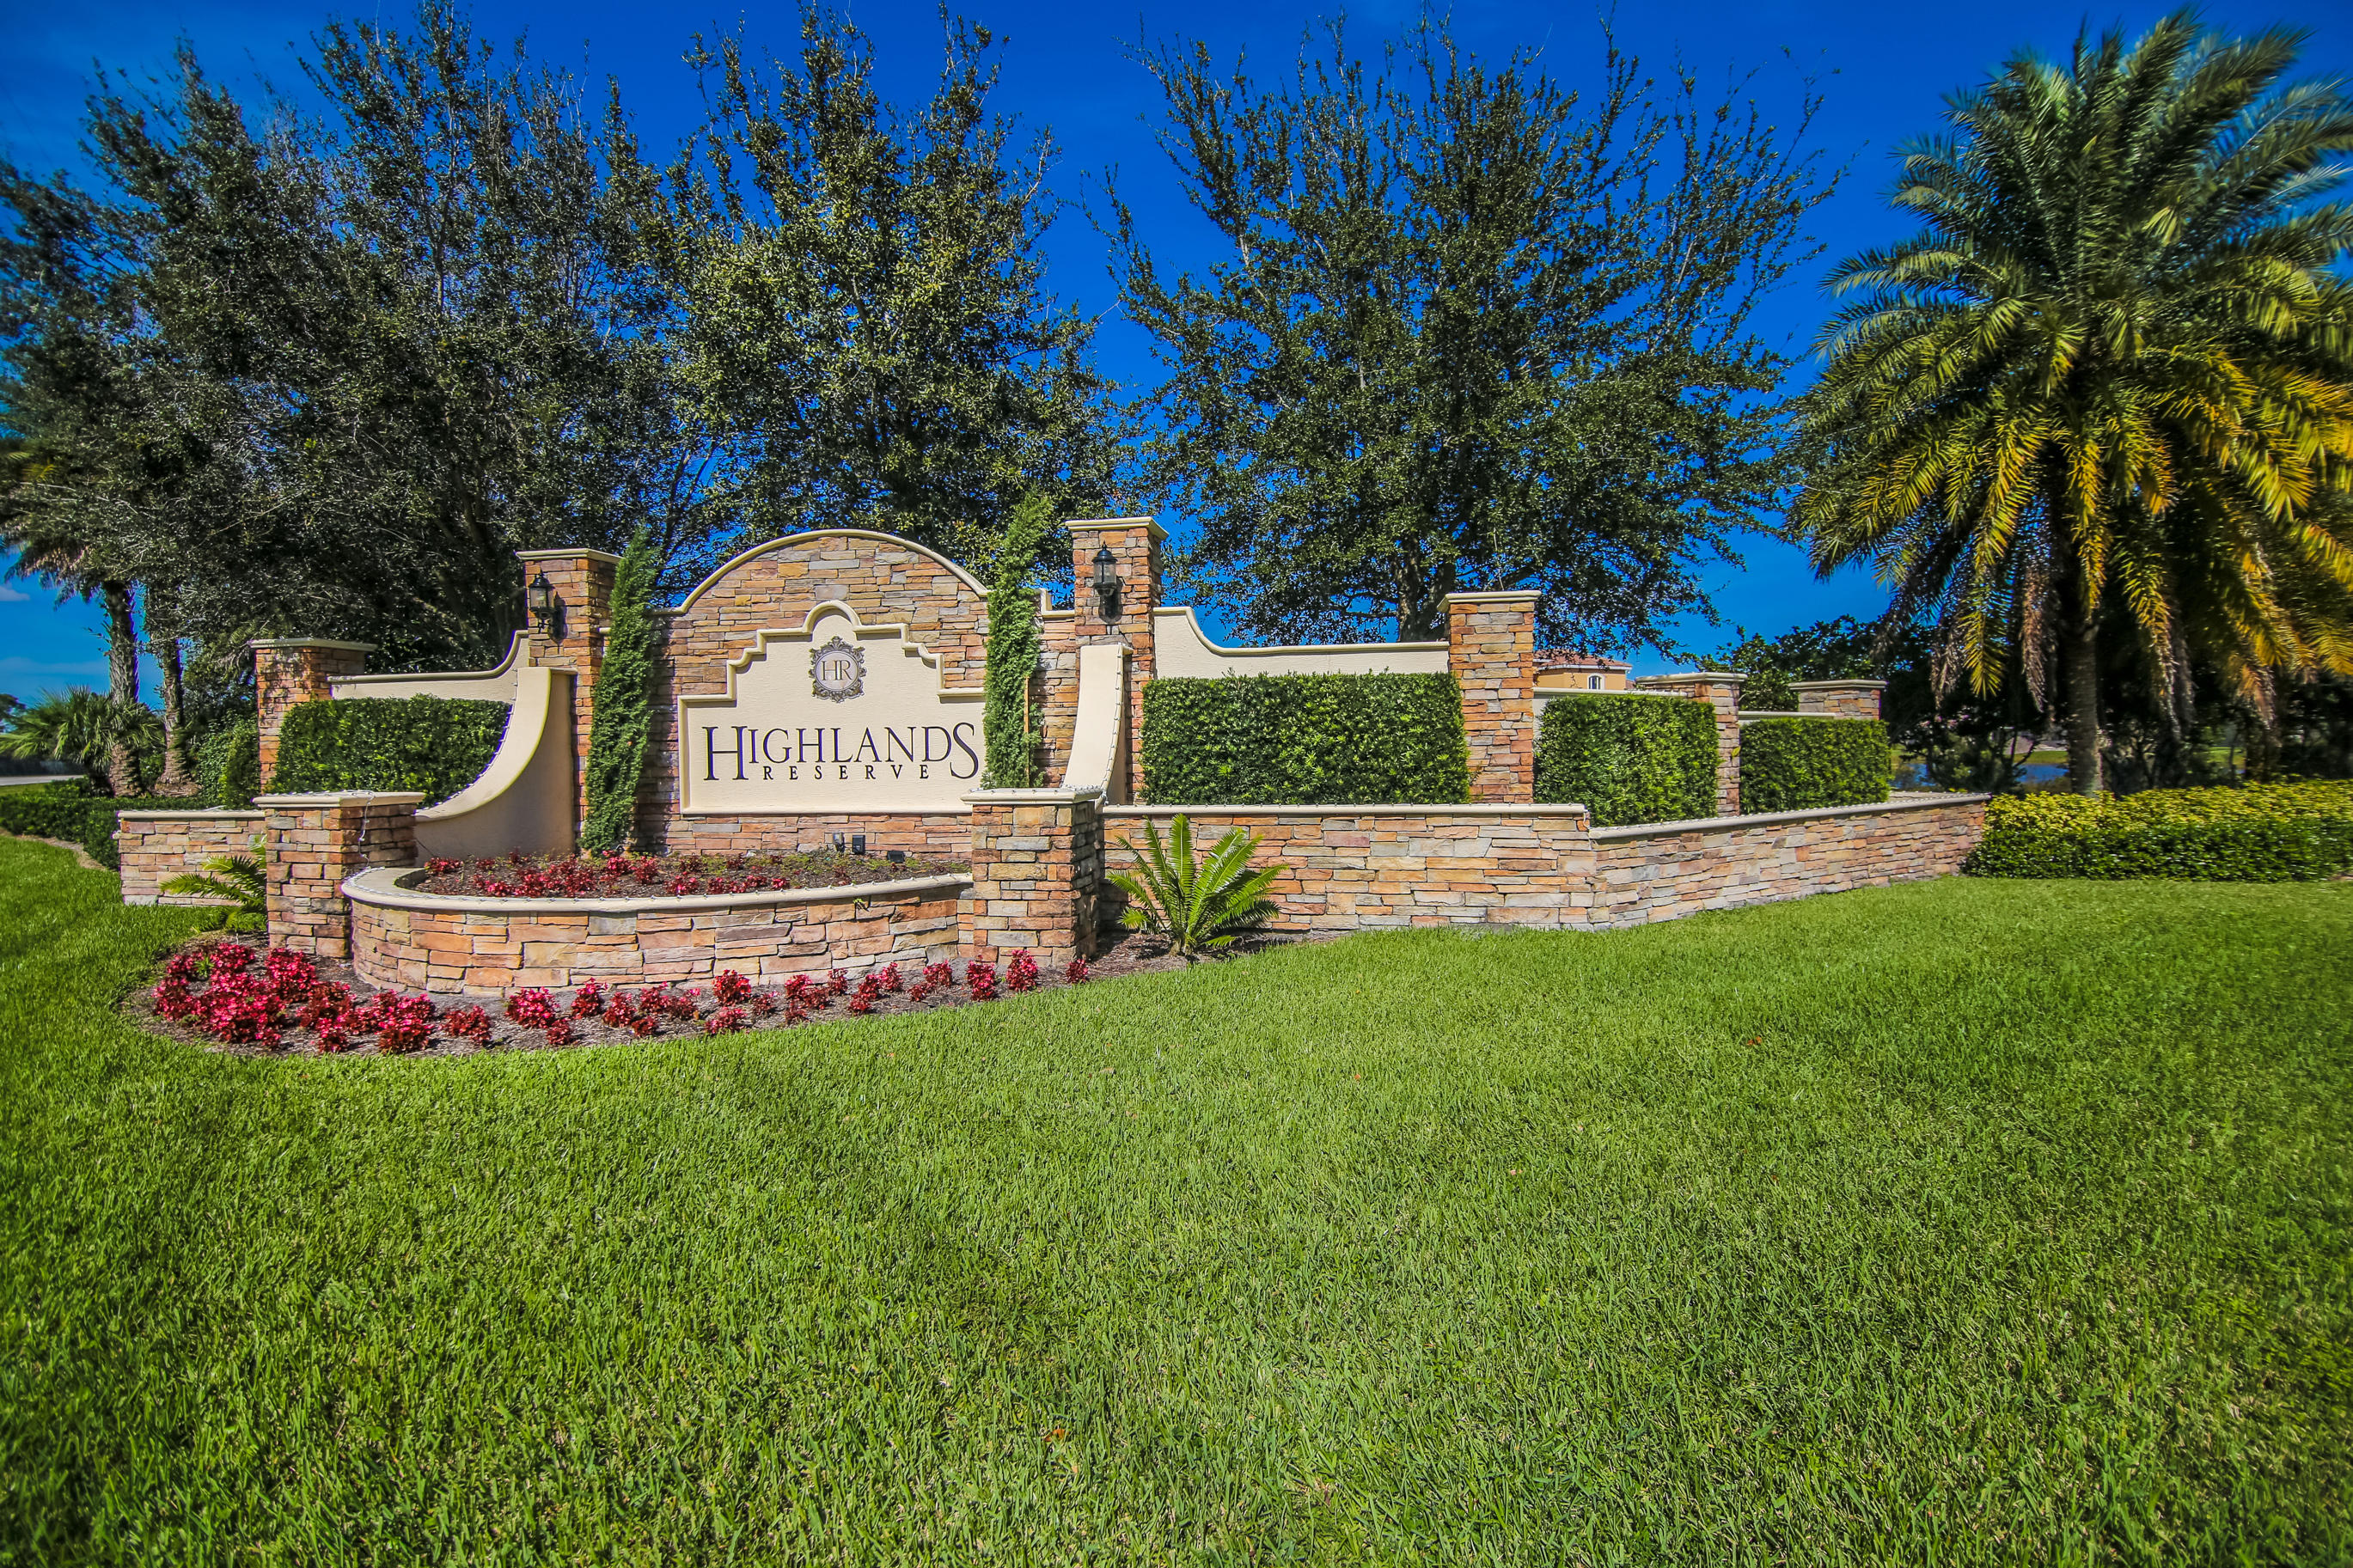 HIGHLANDS RESERVE PALM CITY REAL ESTATE